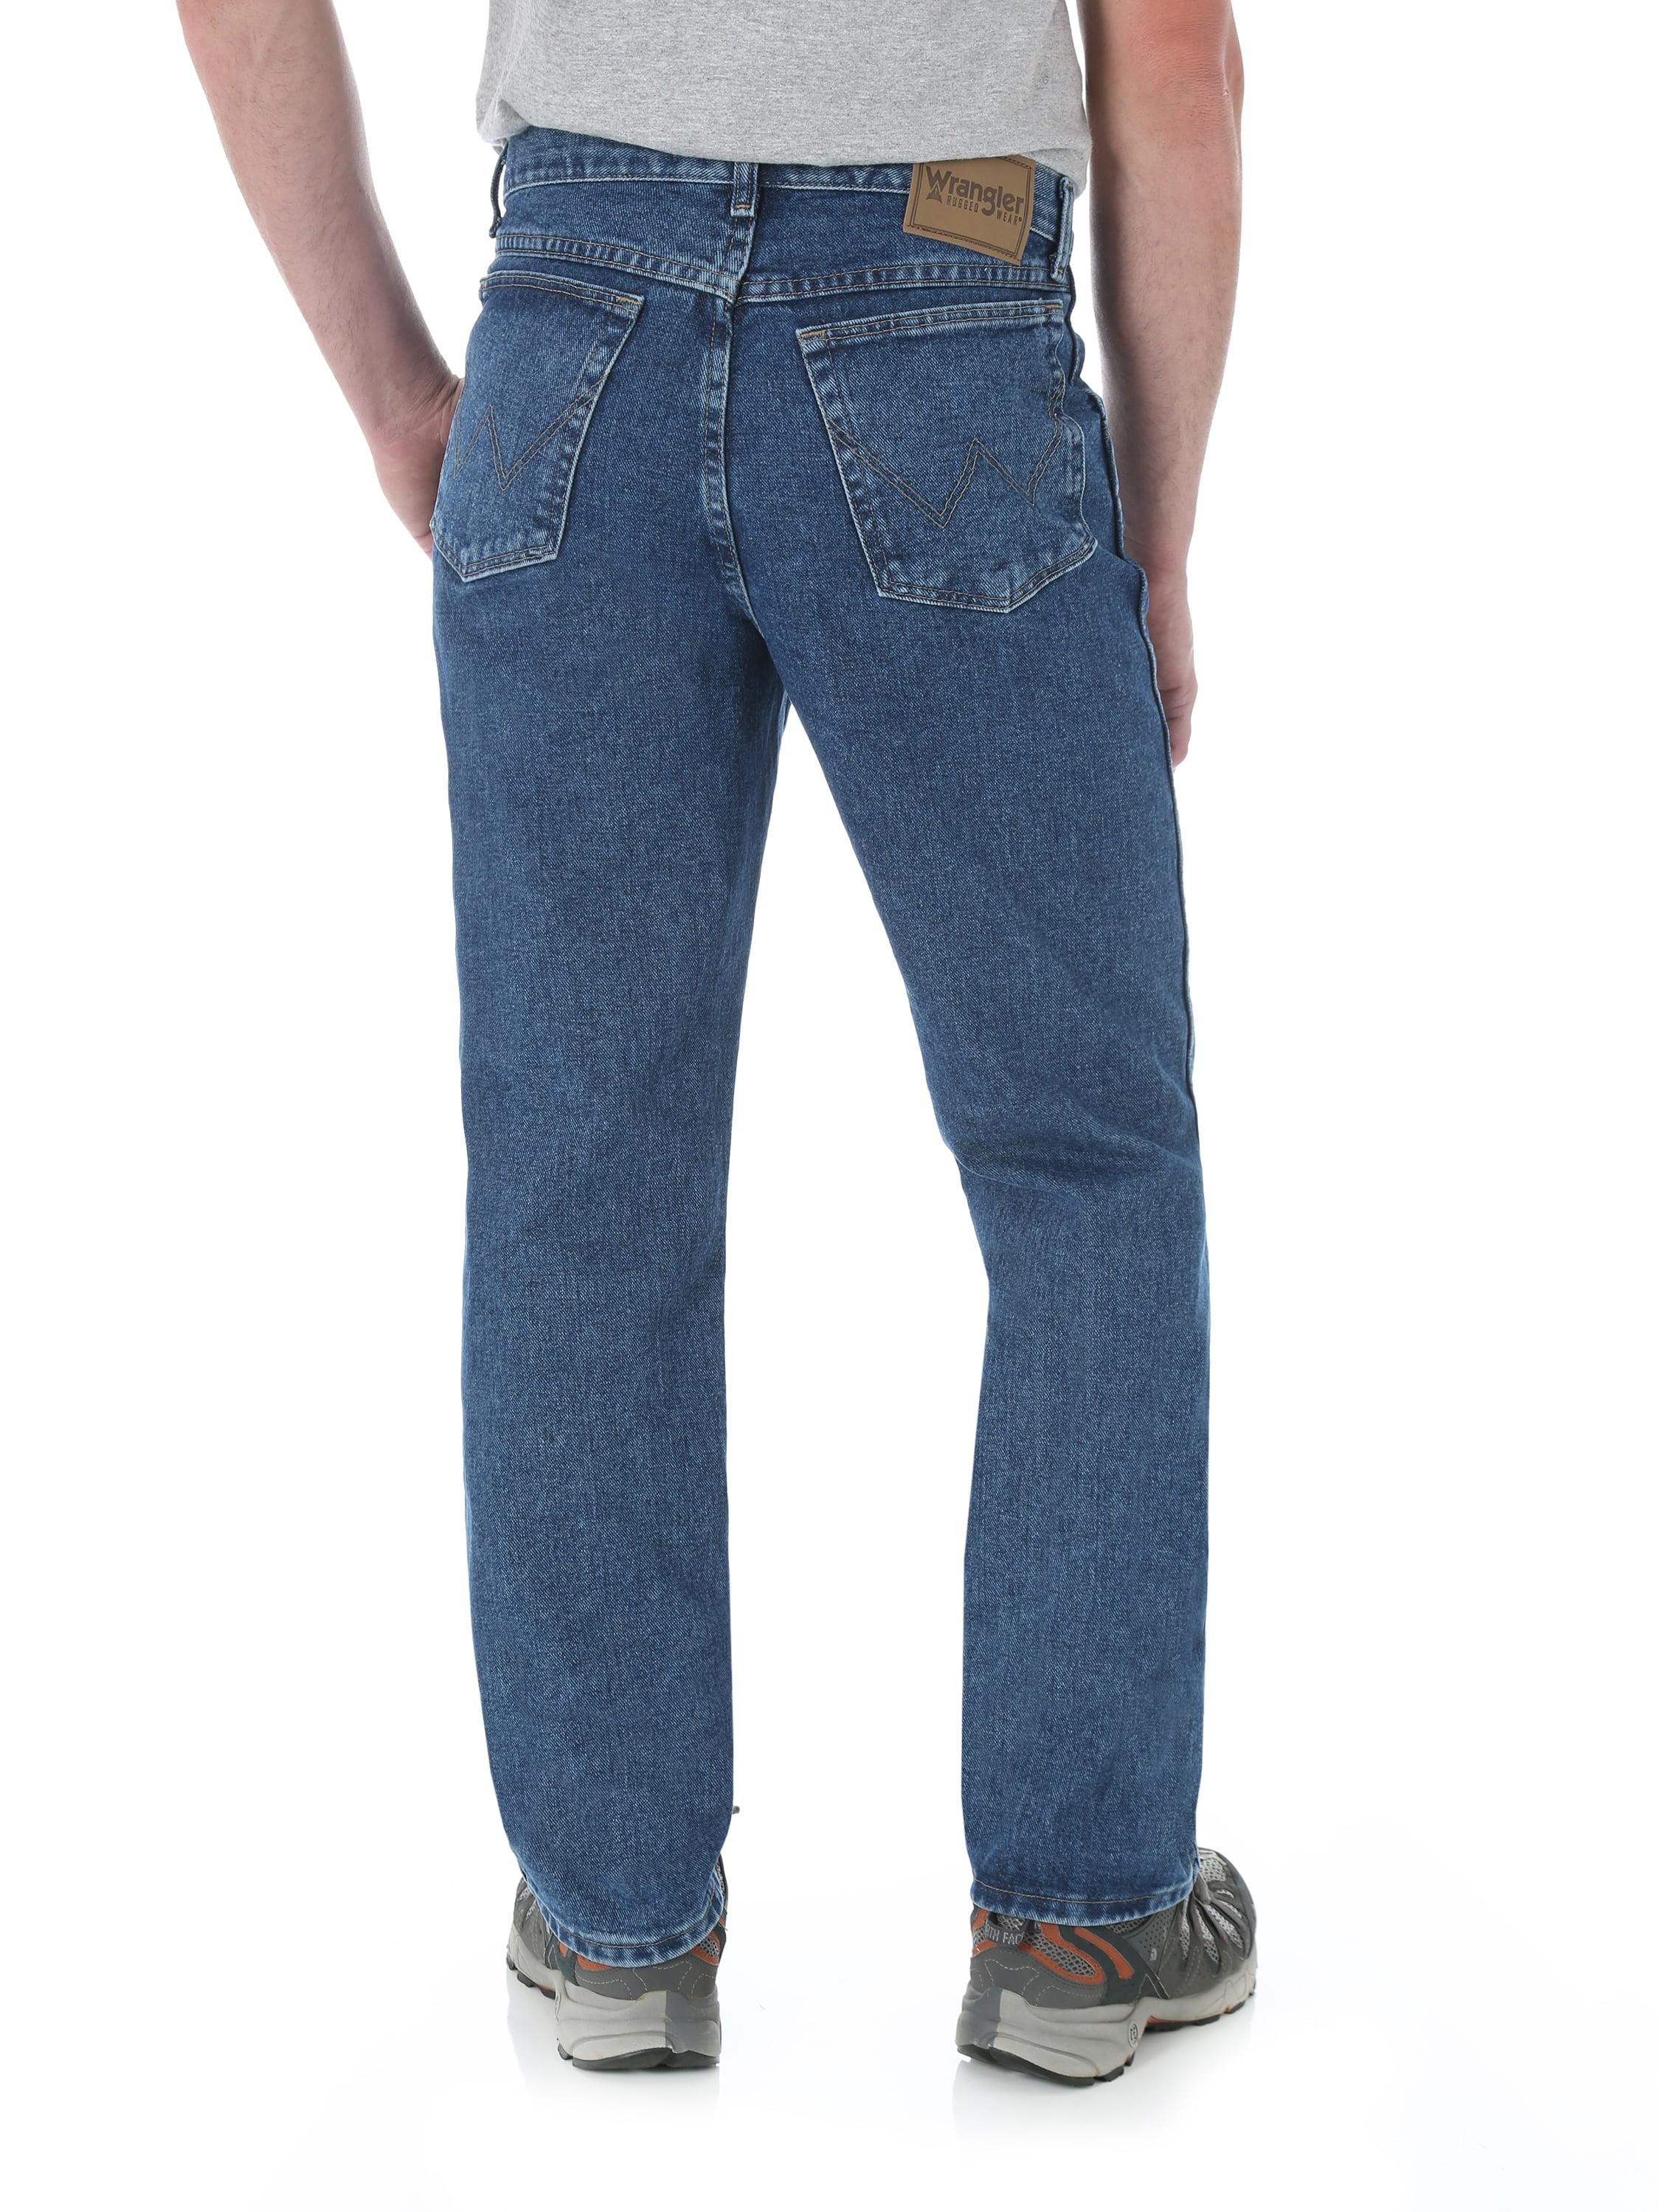 96aed26f Wrangler - Wrangler Men's Rugged Wear Relaxed Fit Jean - Walmart.com